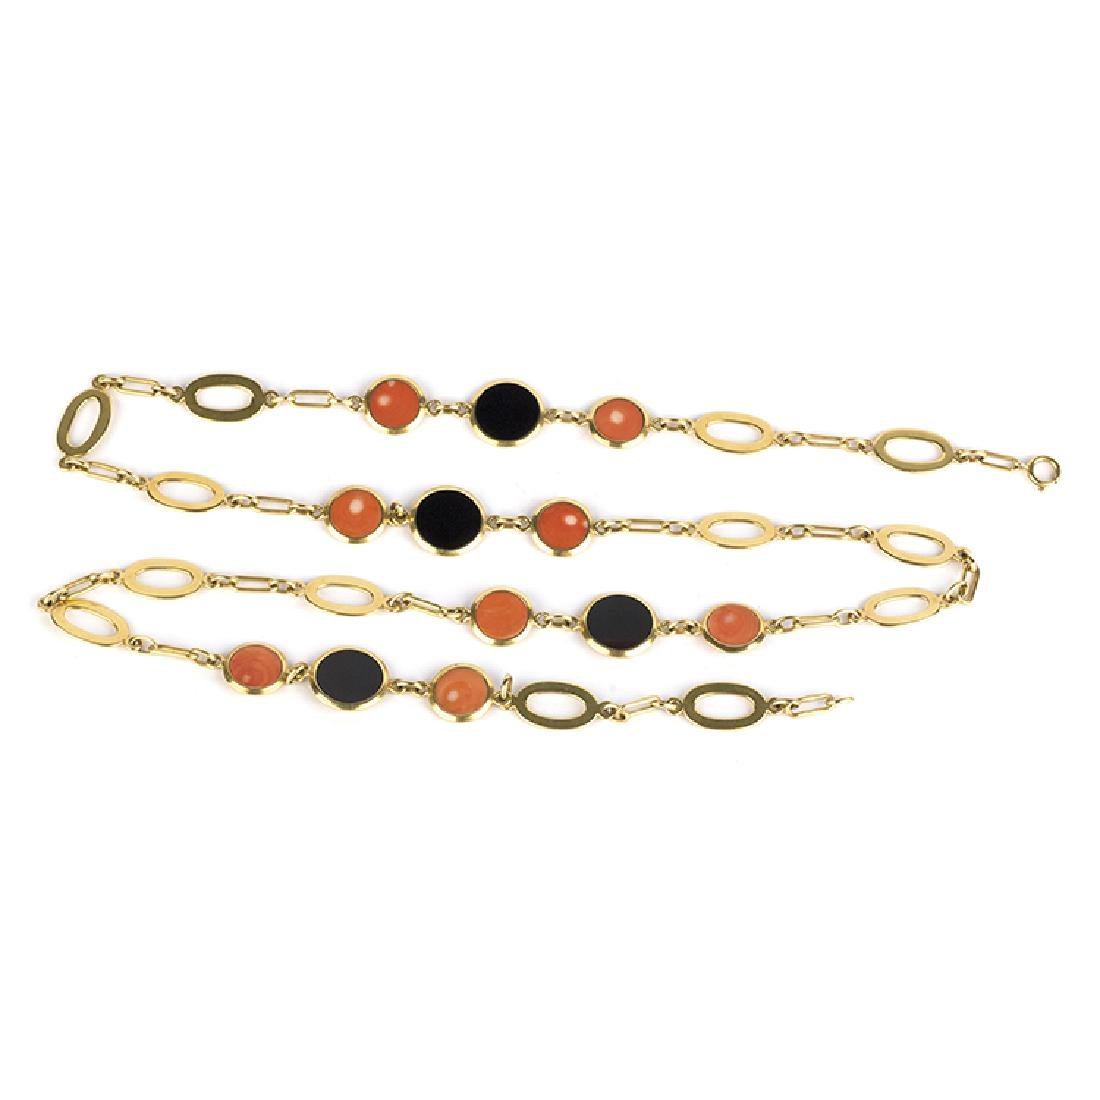 BULGARI chain with round and black tablets and coral